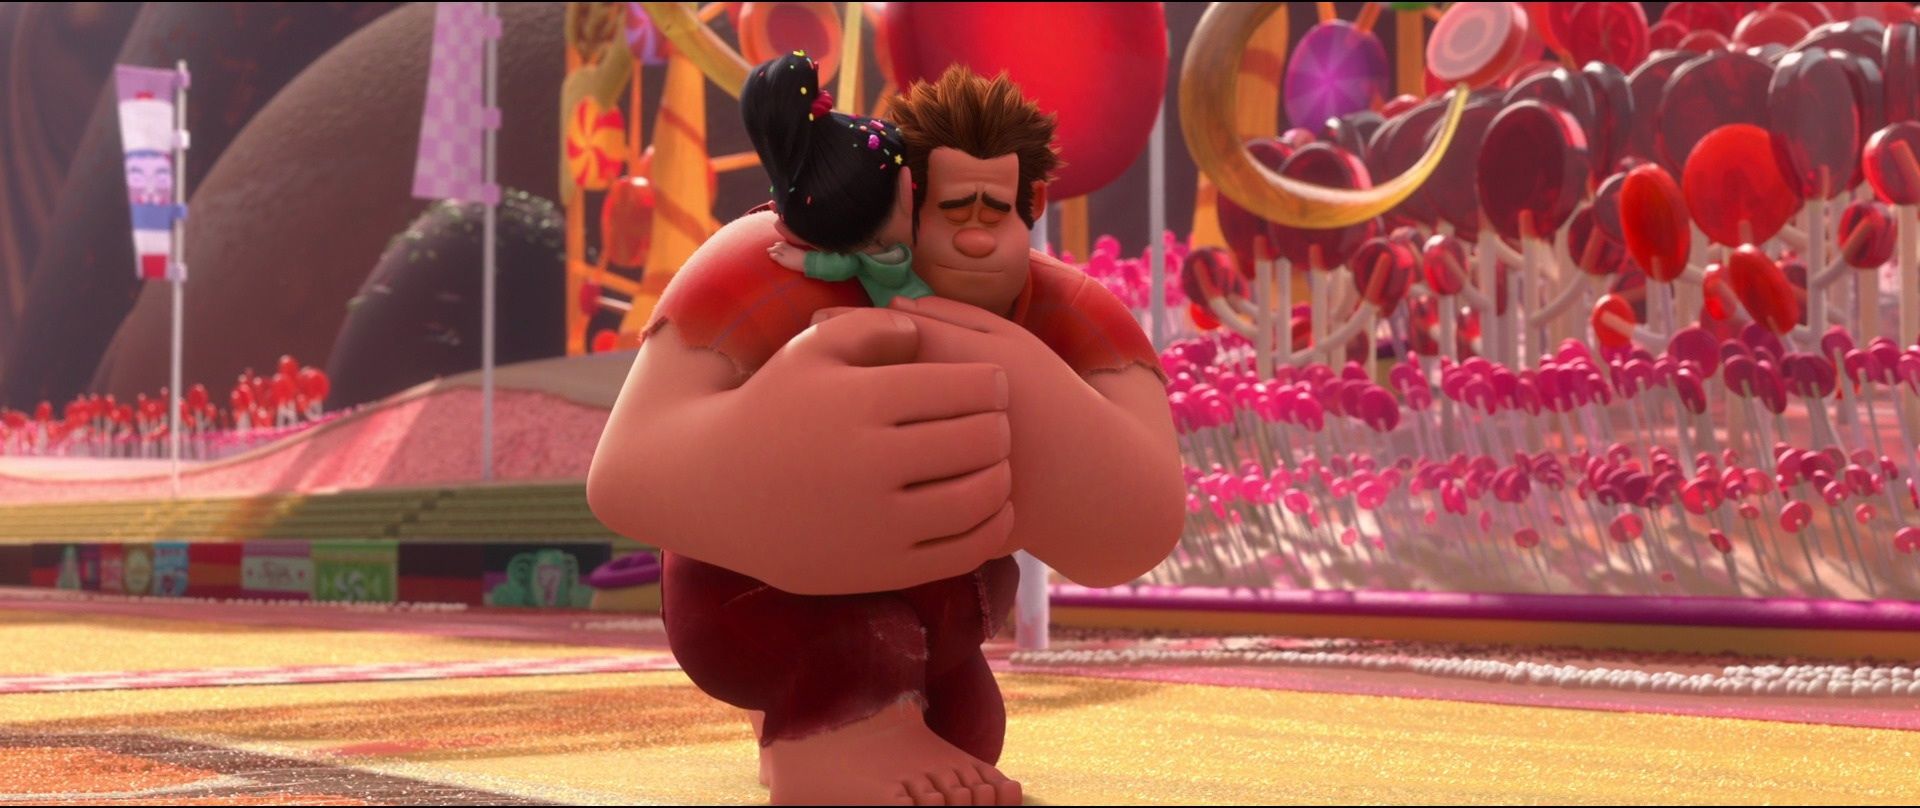 ralph and vanellope relationship goals